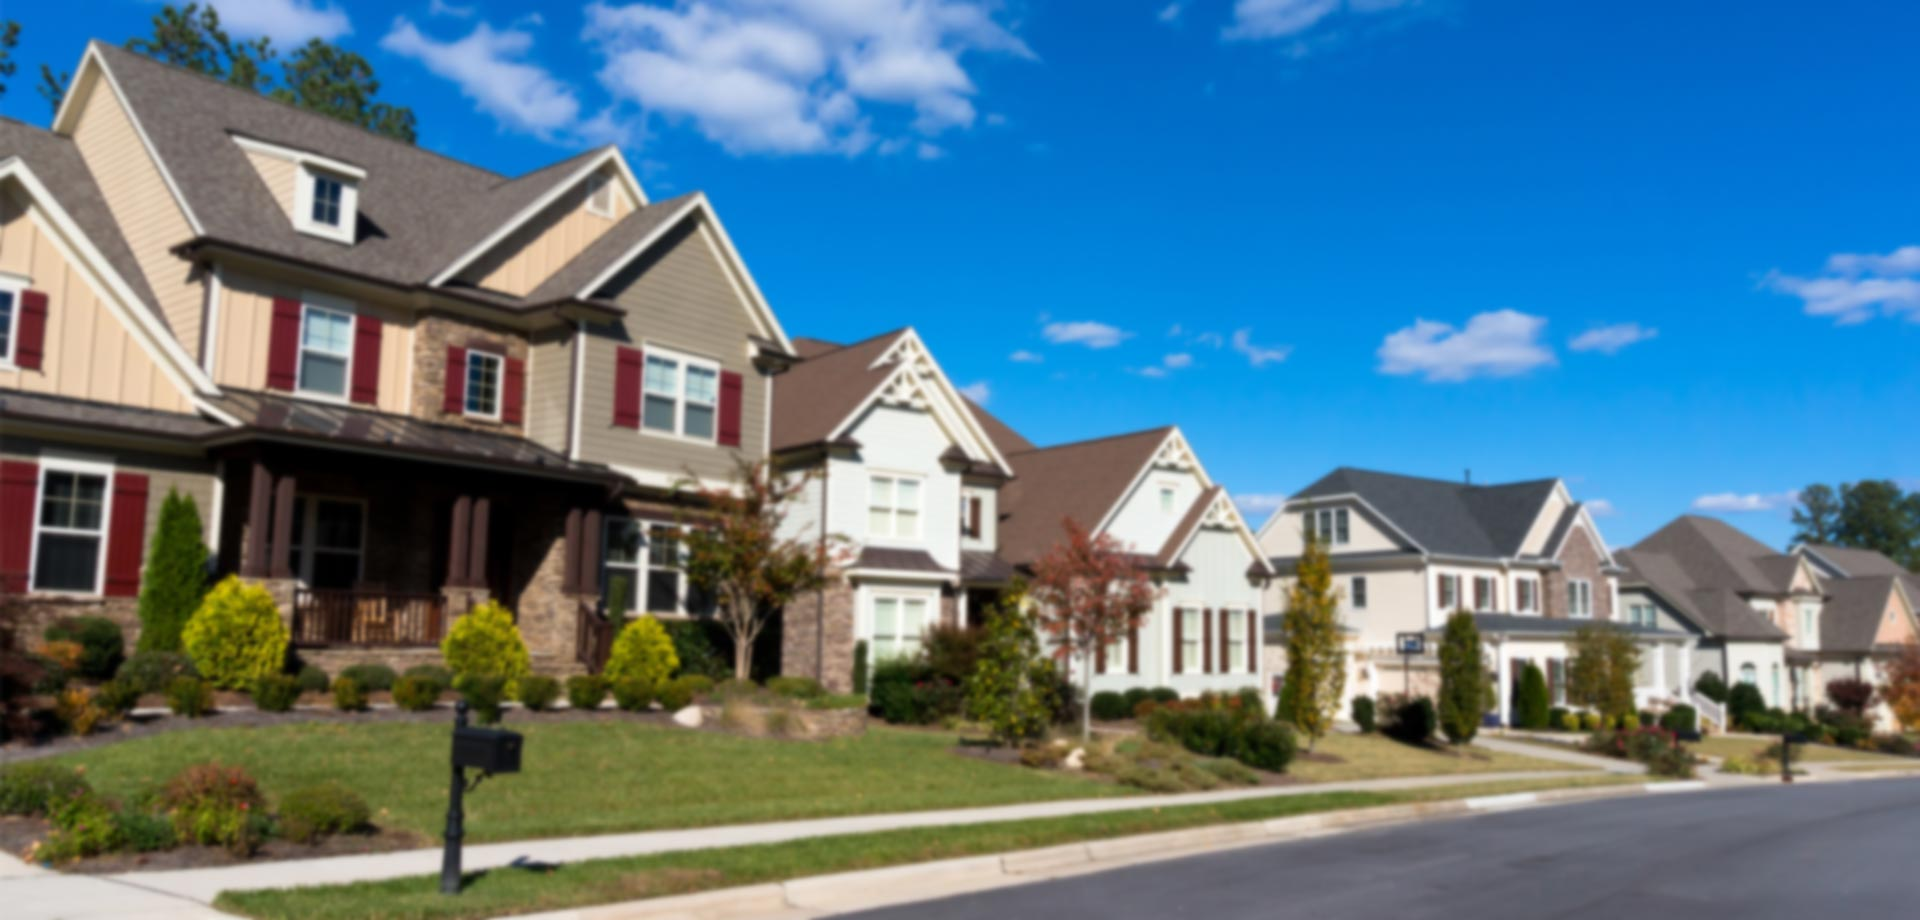 5 Things to Look for When Choosing the Best Residential and Corporate Escrow Services in AZ